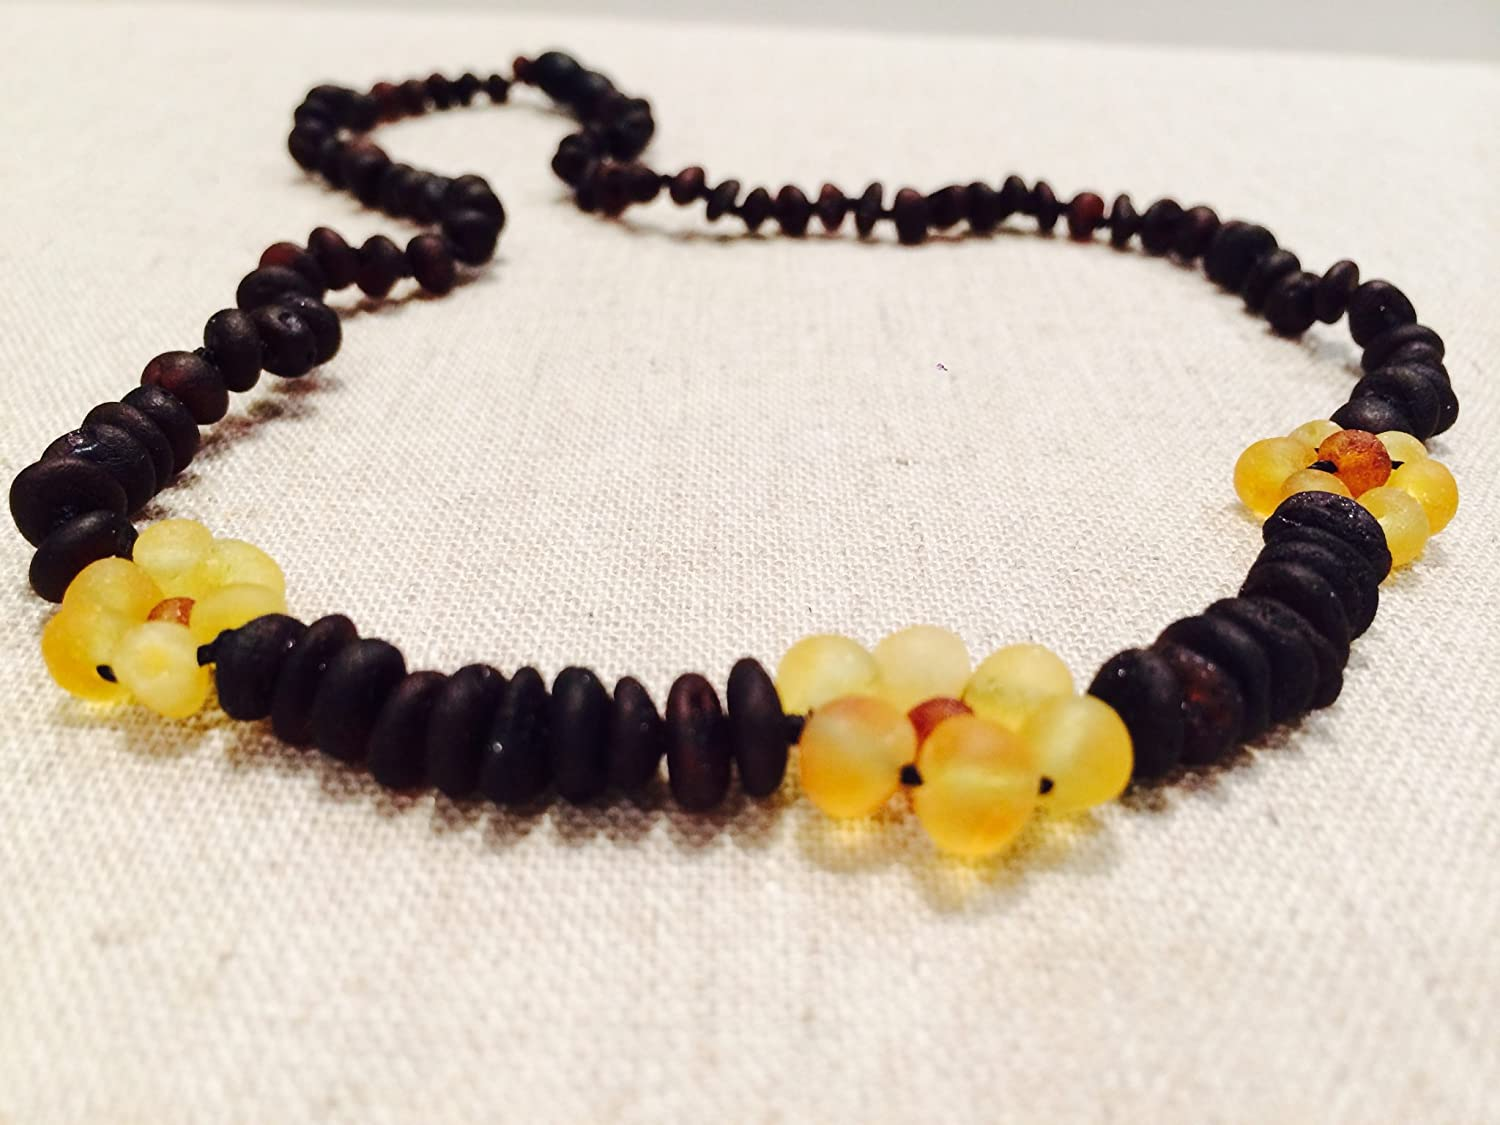 Raw 14 Inch Cherry Lemon Flower Unpolished Baltic Amber Beaded Necklace for Child, big kid, toddler, child, teenager. Cramps, Back ache, head ache. Certificated. (Raw Cherry Flower) by Baltic Essentials   B013IAGAI4